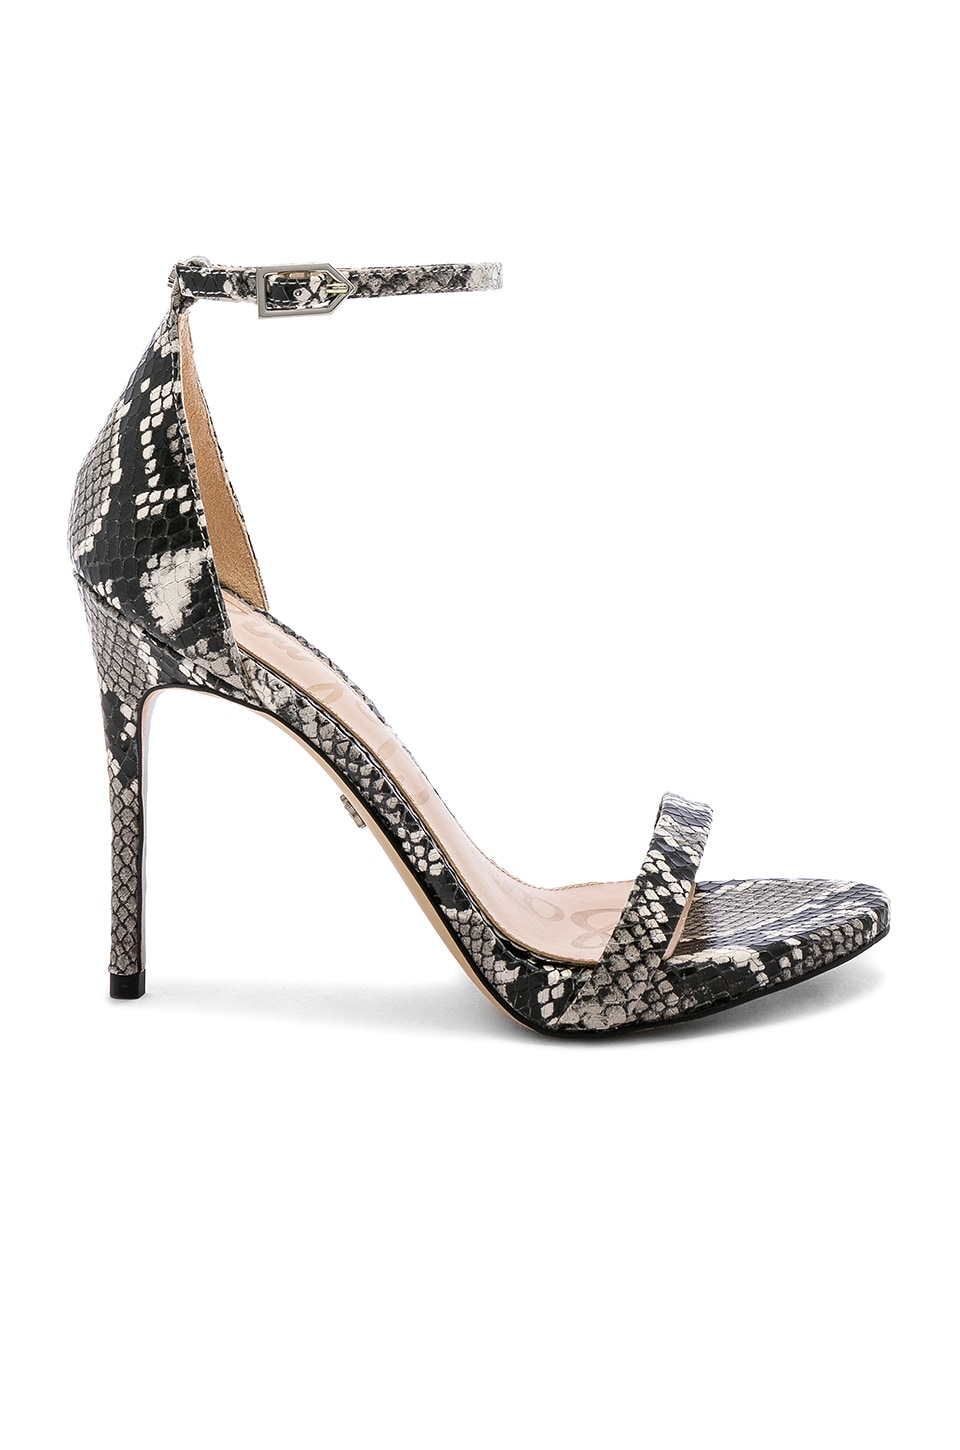 Sam Edelman Ariella Heel in Black & White Snake Multi